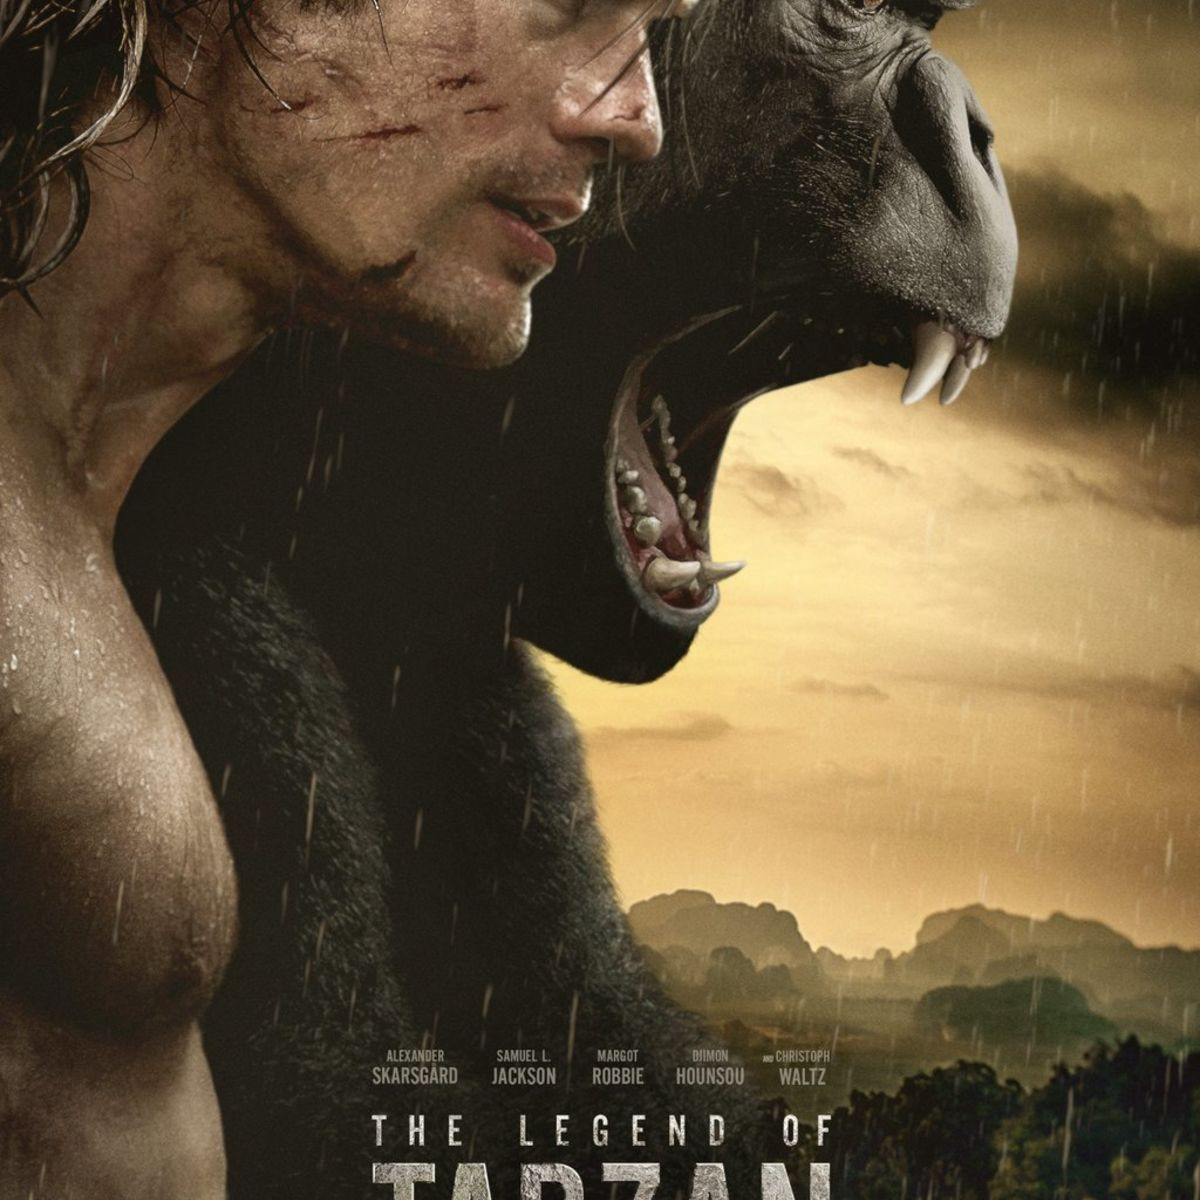 The-Legend-of-Tarzan-poster.jpg